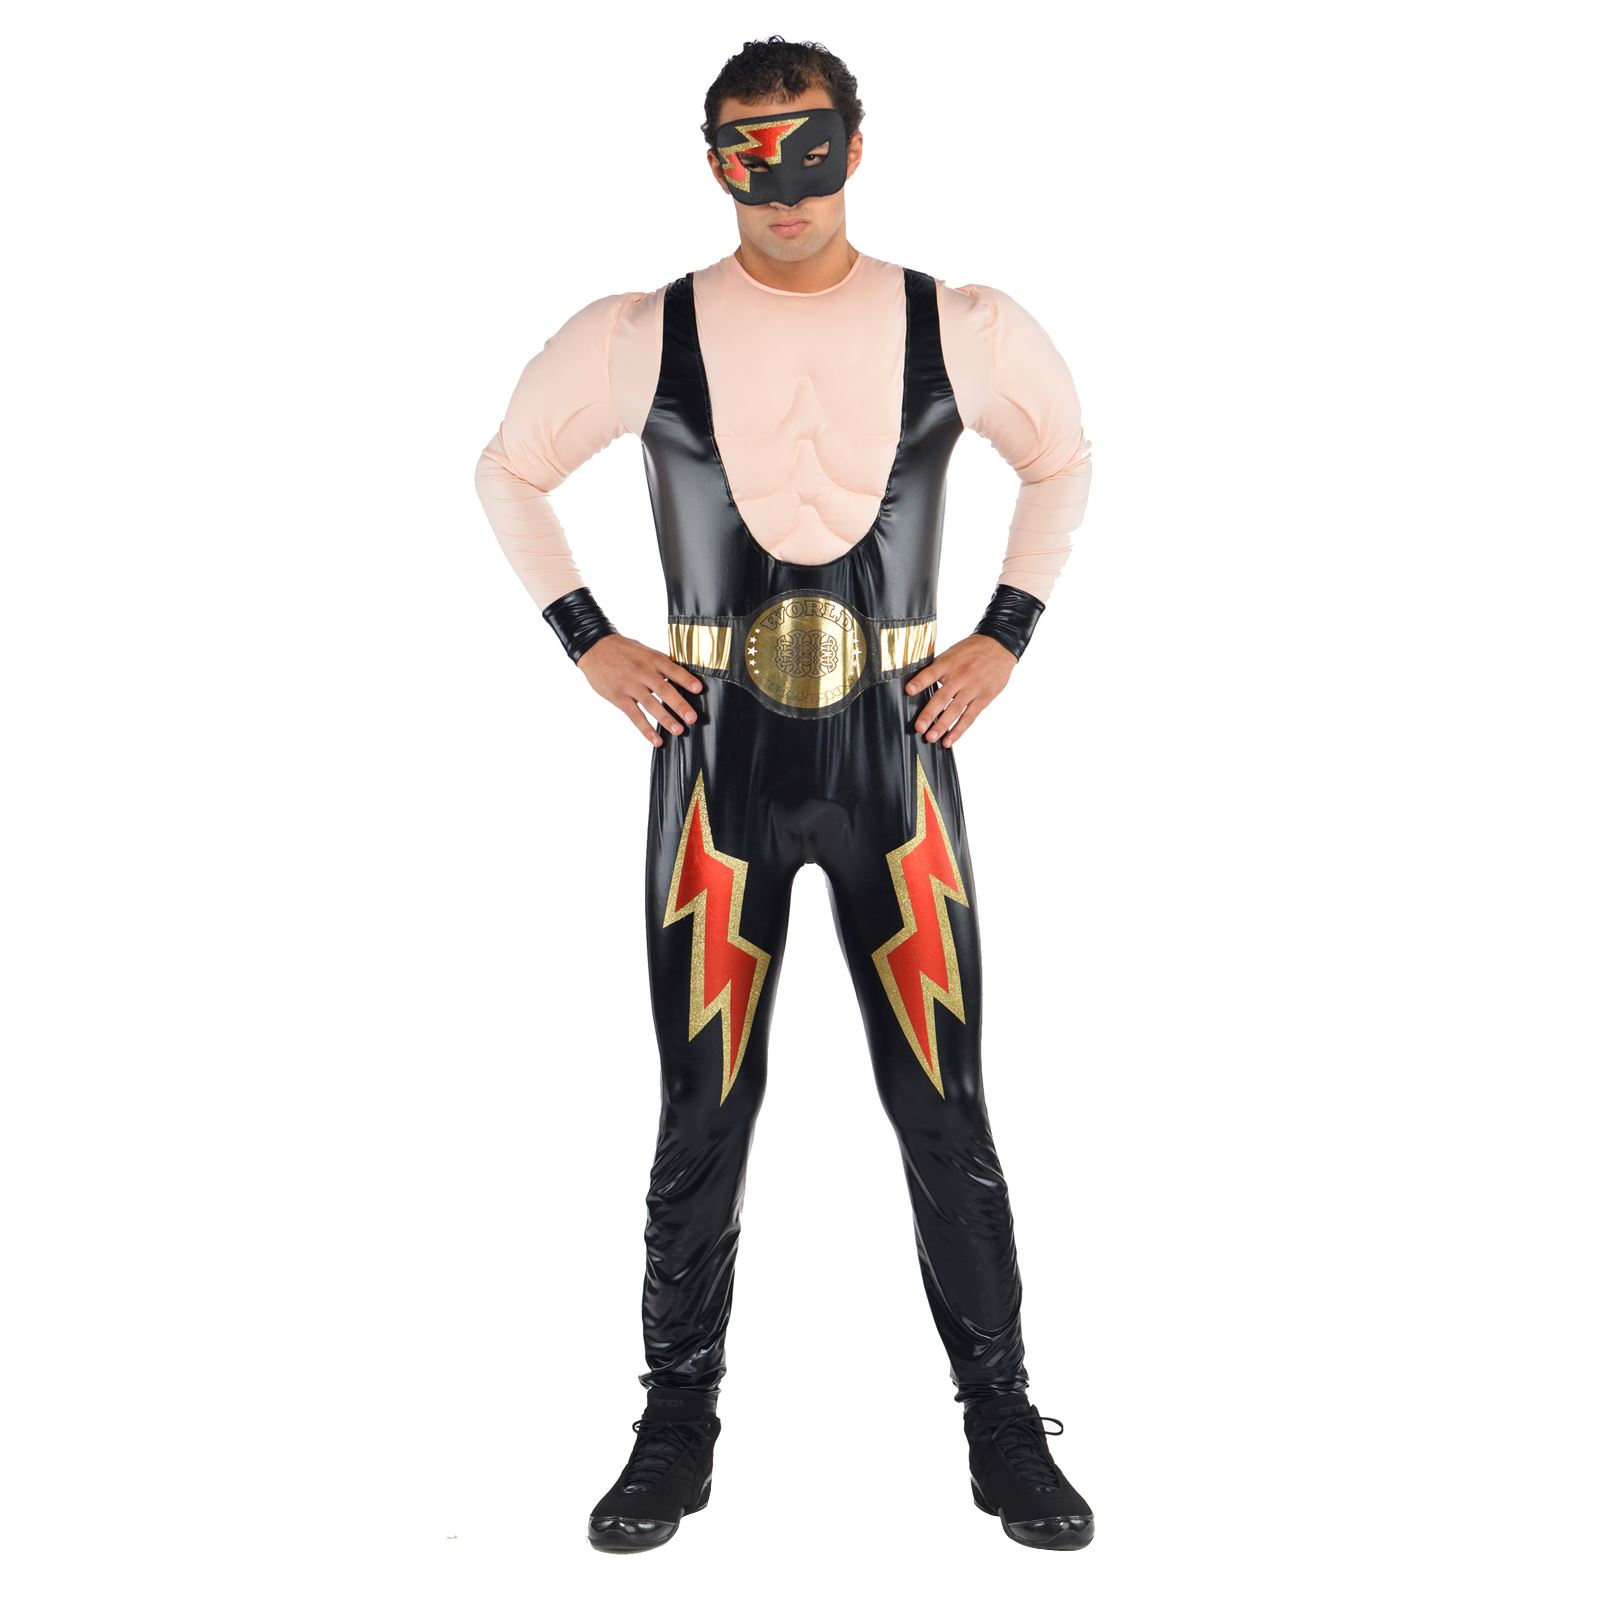 Trajes De Lucha Libre Wwe Wrestler Mens Fancy Dress Wrestling Party Adult Deluxe